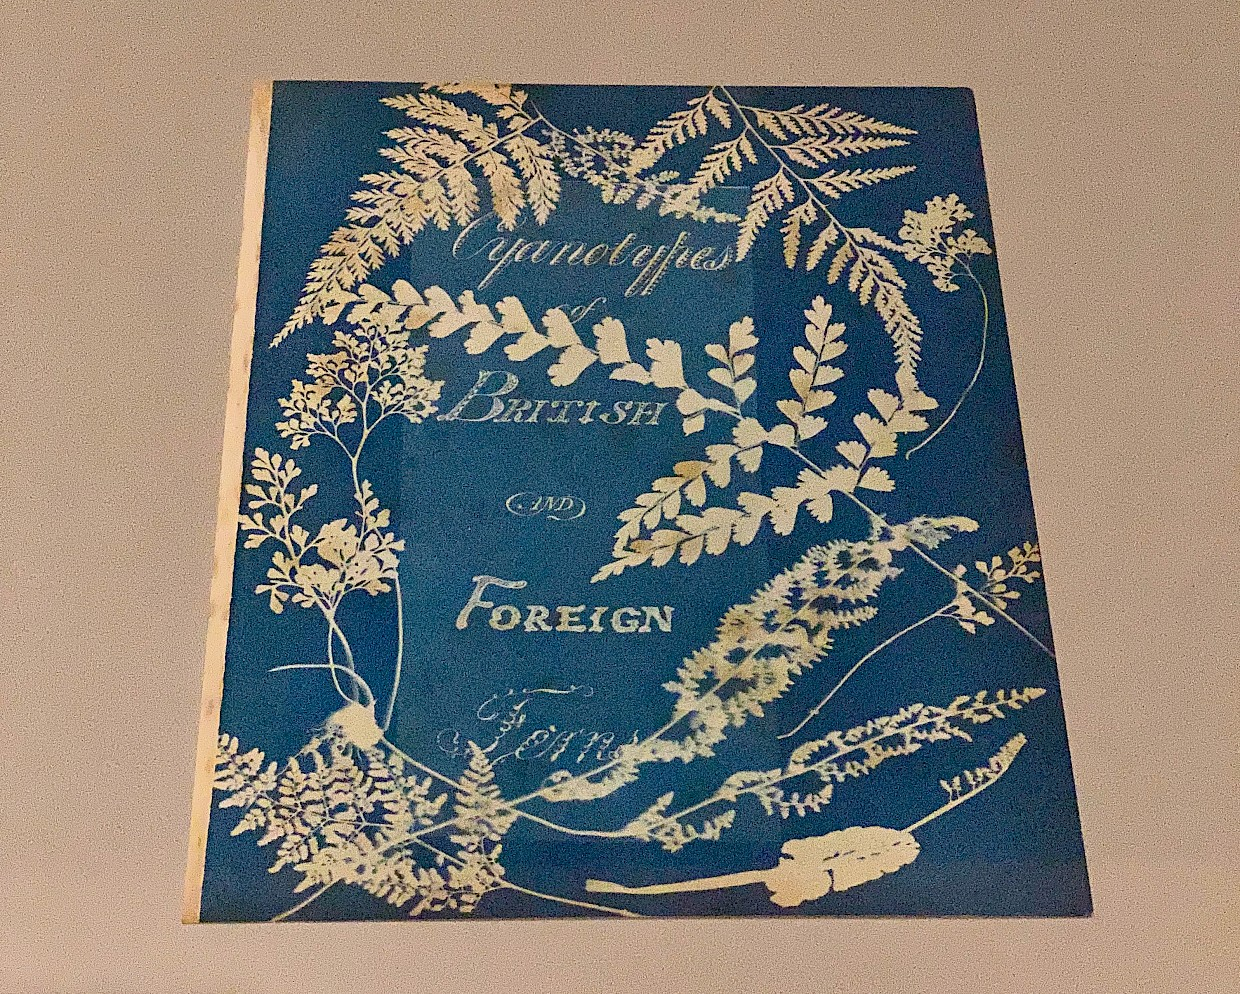 blue book cover of Anna Atkins book on ferns